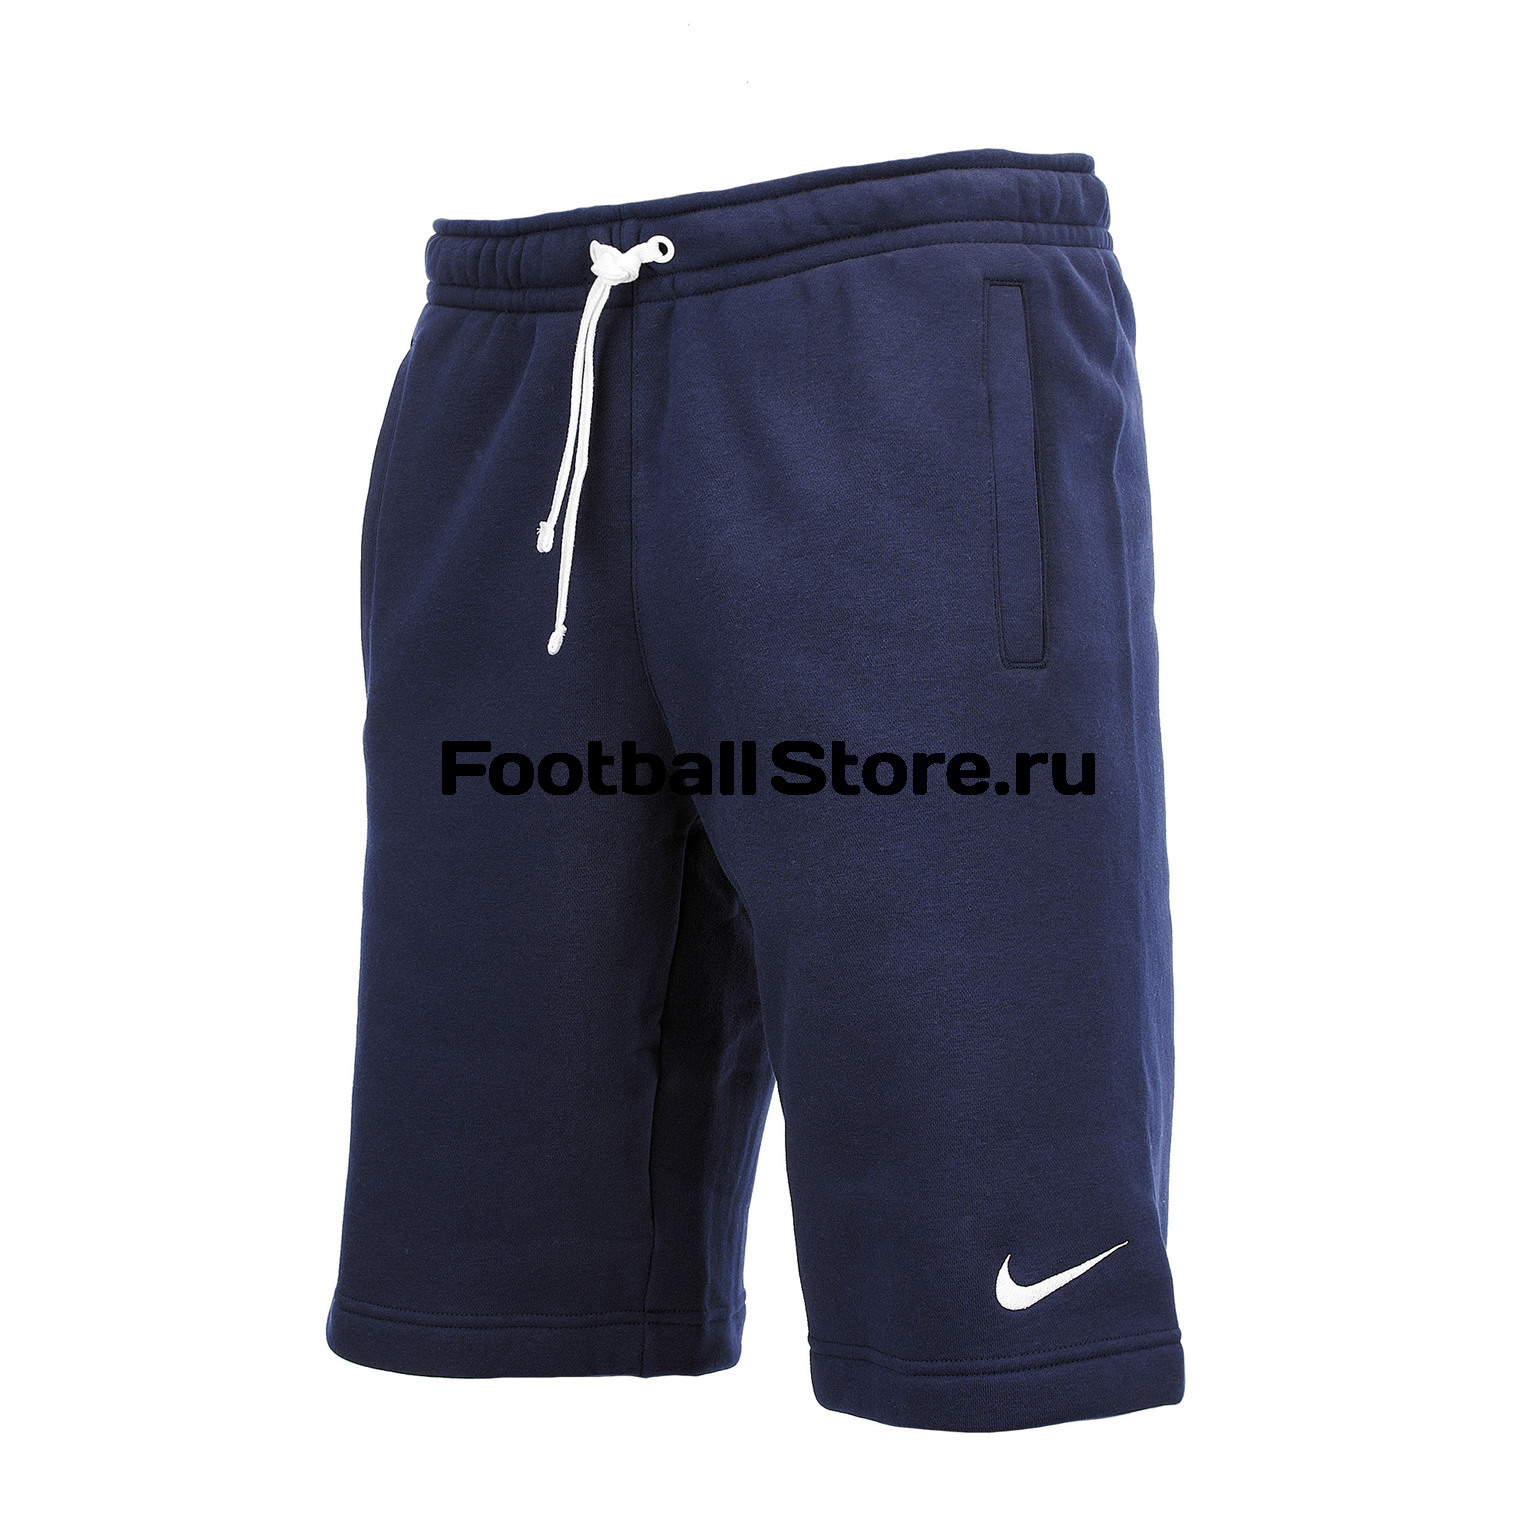 Шорты Nike Flc Club19 Short AQ3136-451 недорого